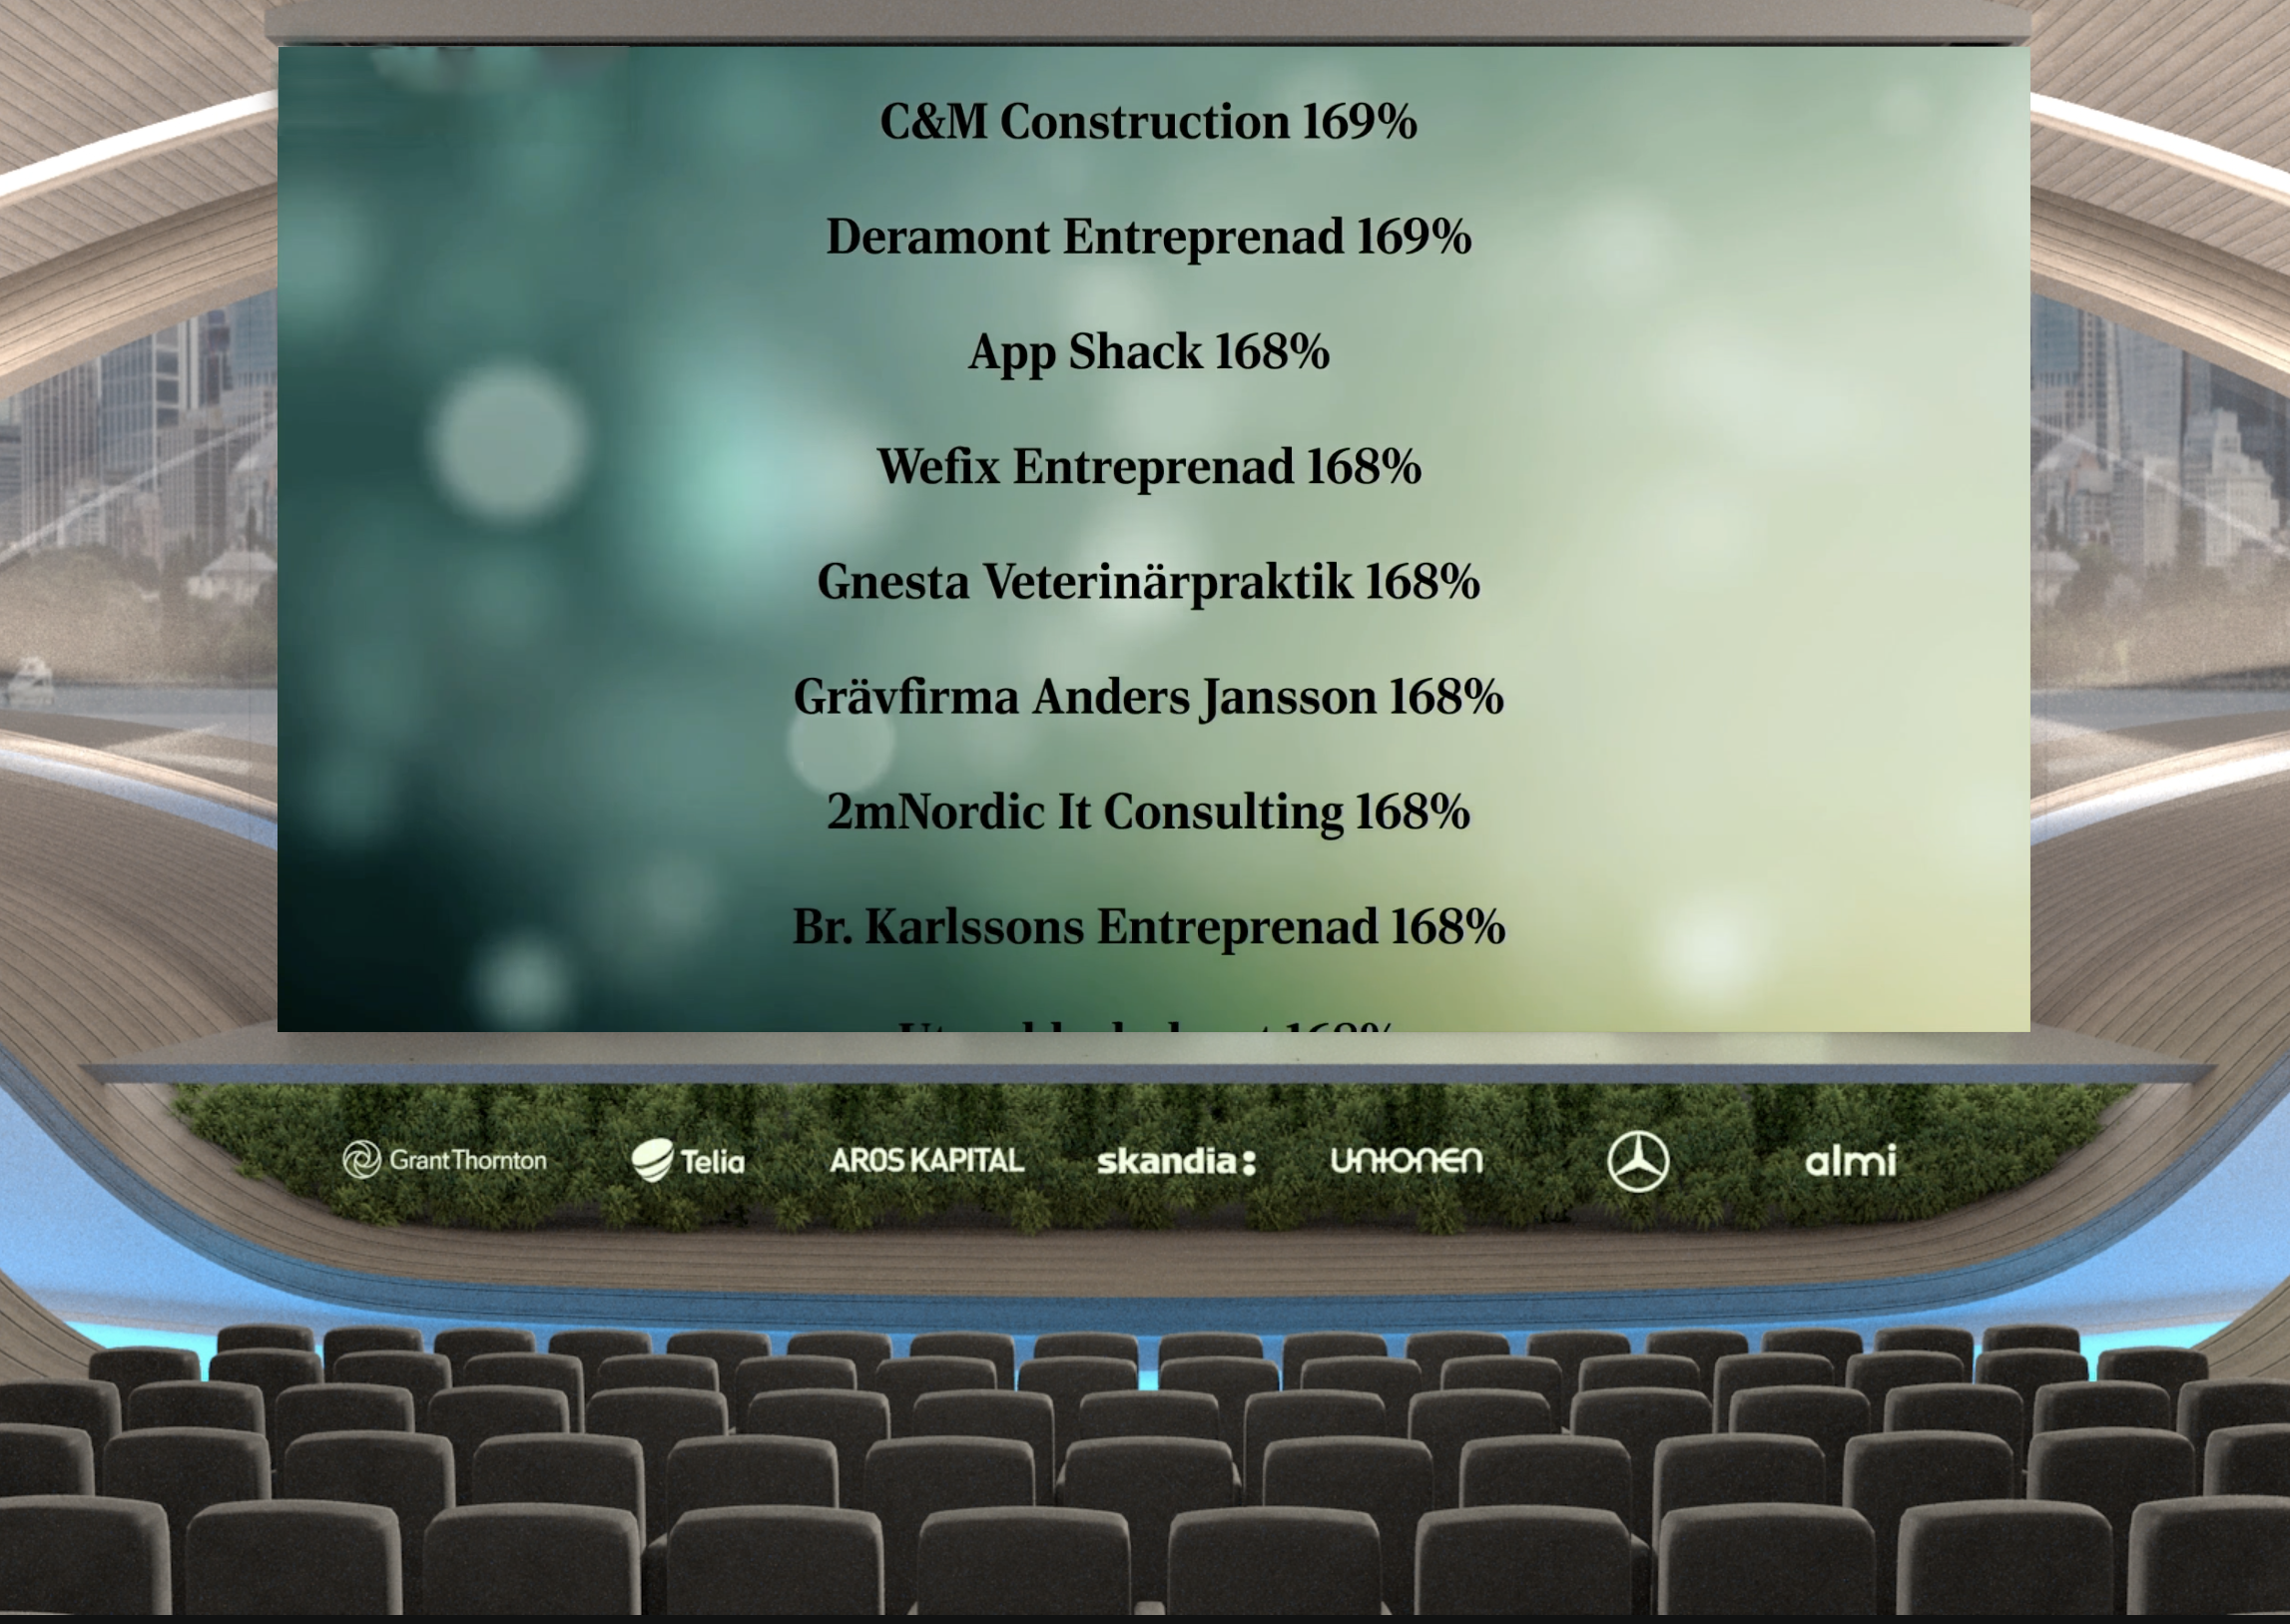 A screenshot of the Di Gasell virtual award ceremony, listing companies on a screen, including App Shack.